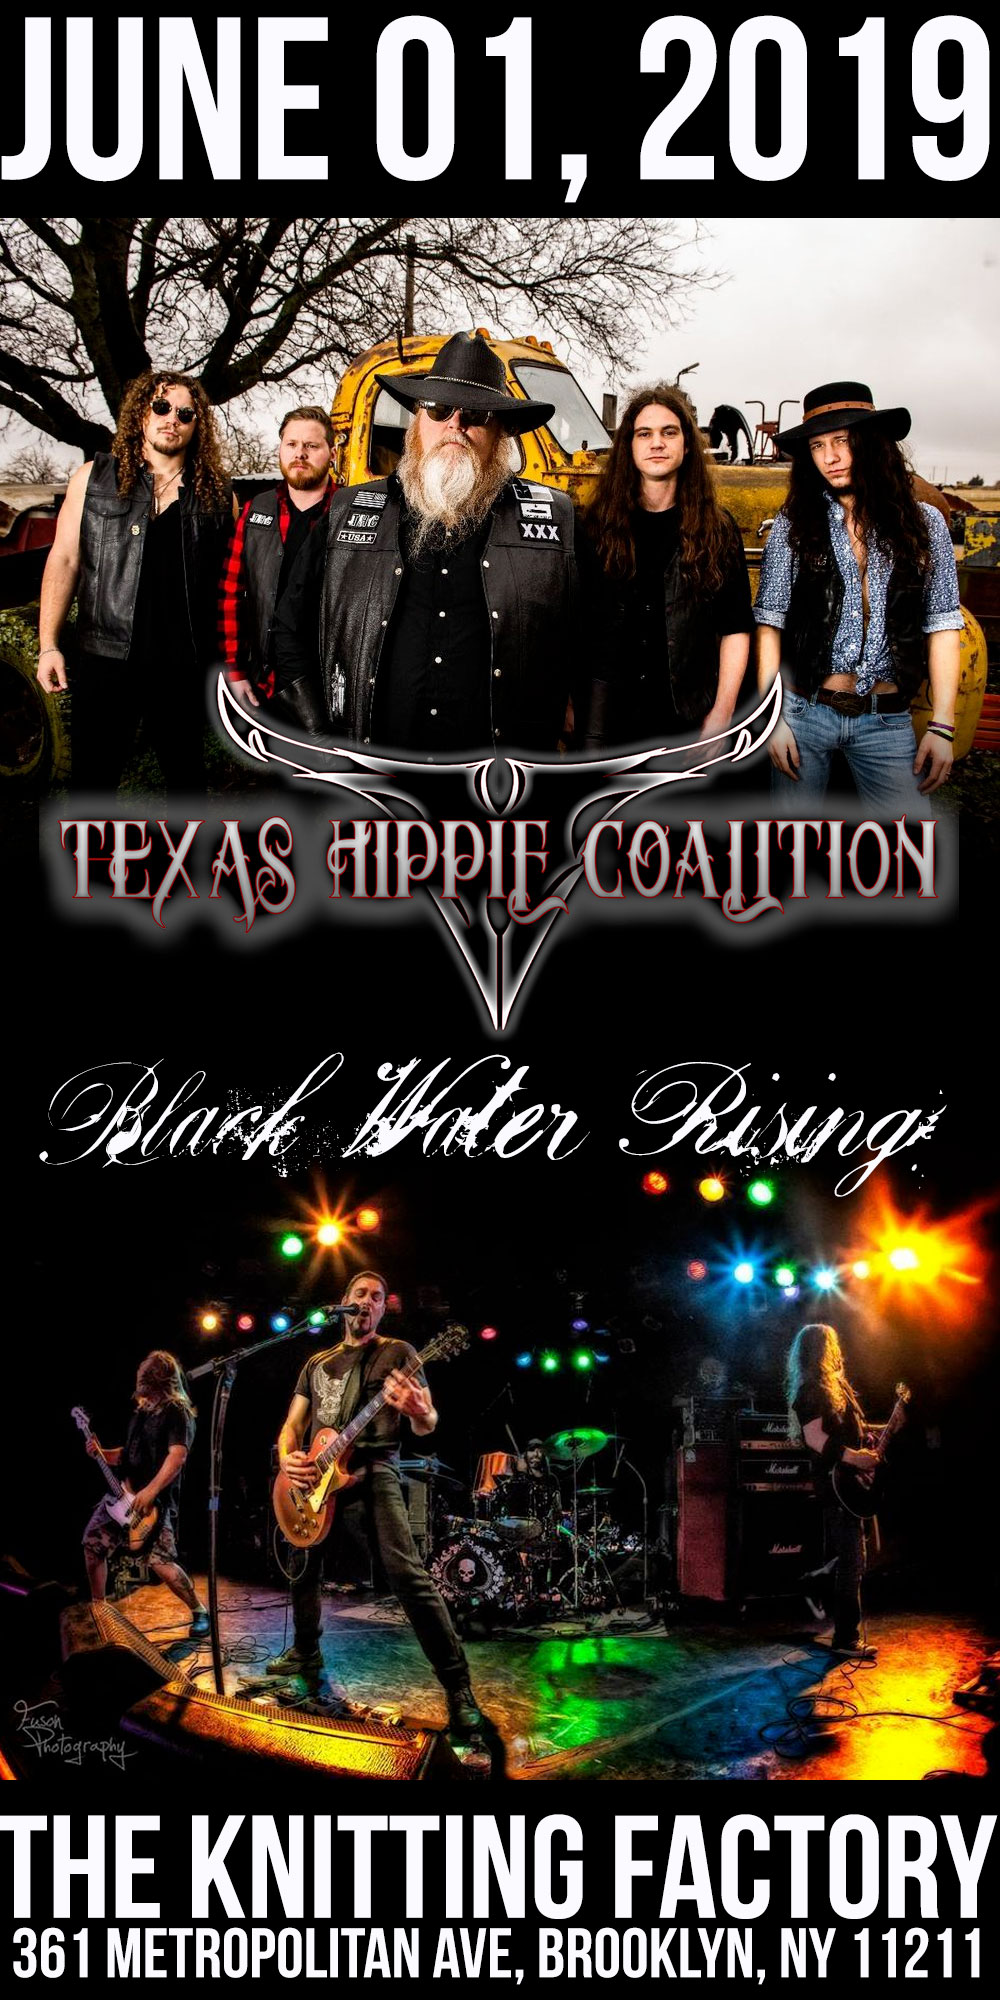 Texas Hippie Coalition and Black Water Rising at The Knitting Factory